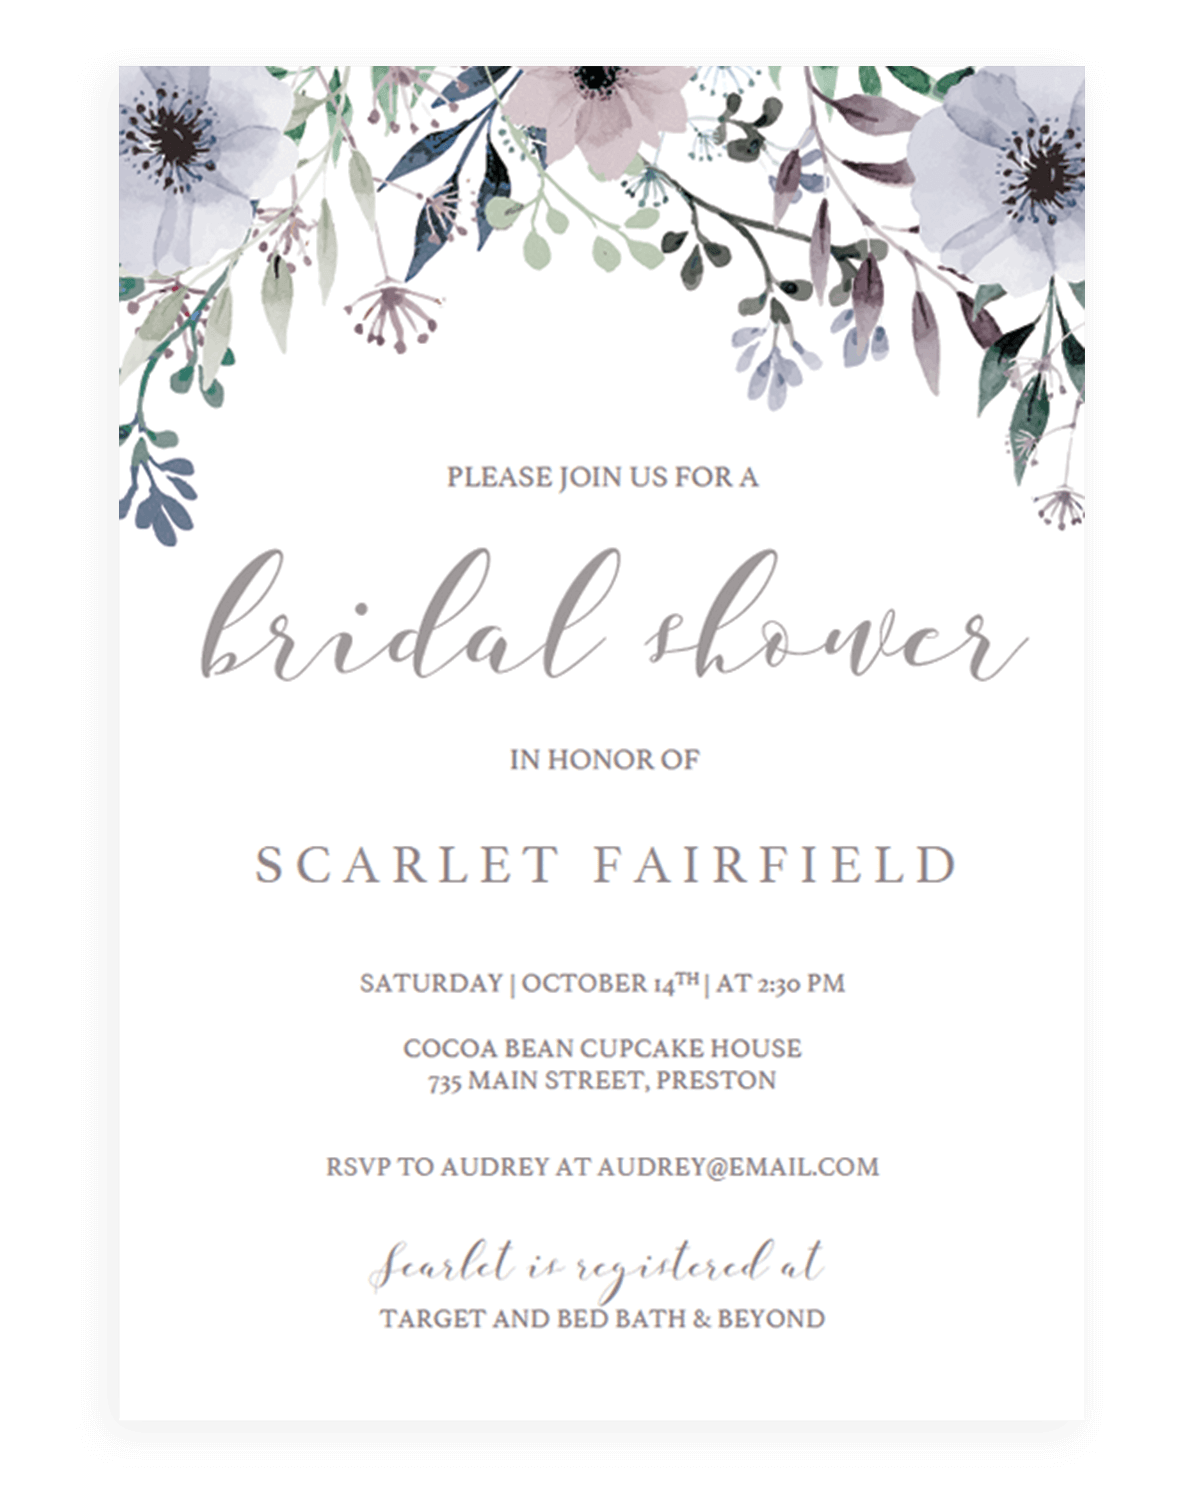 All bridal shower invitations - Papersizzle